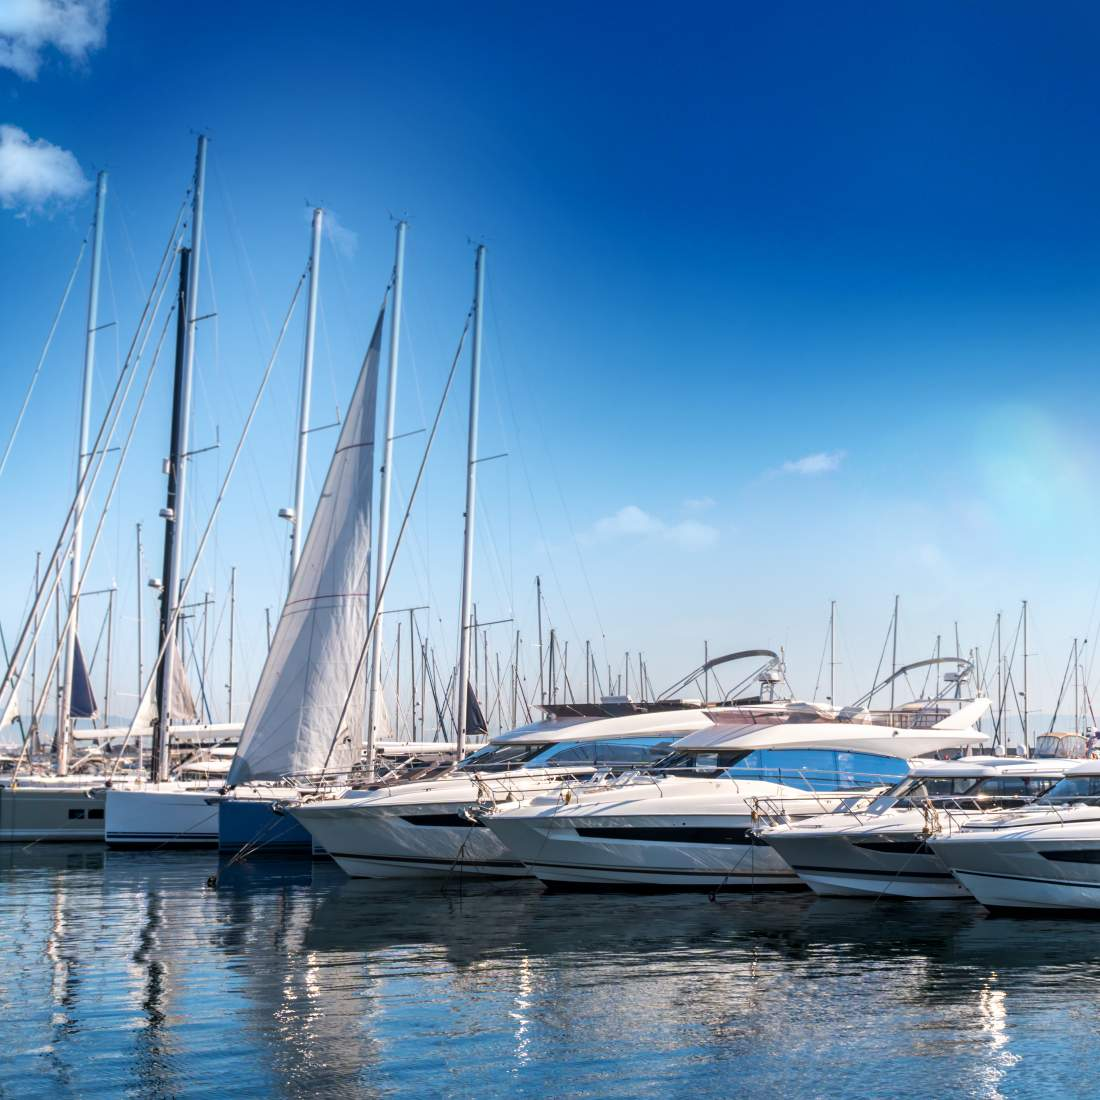 Ship harbours and marinas